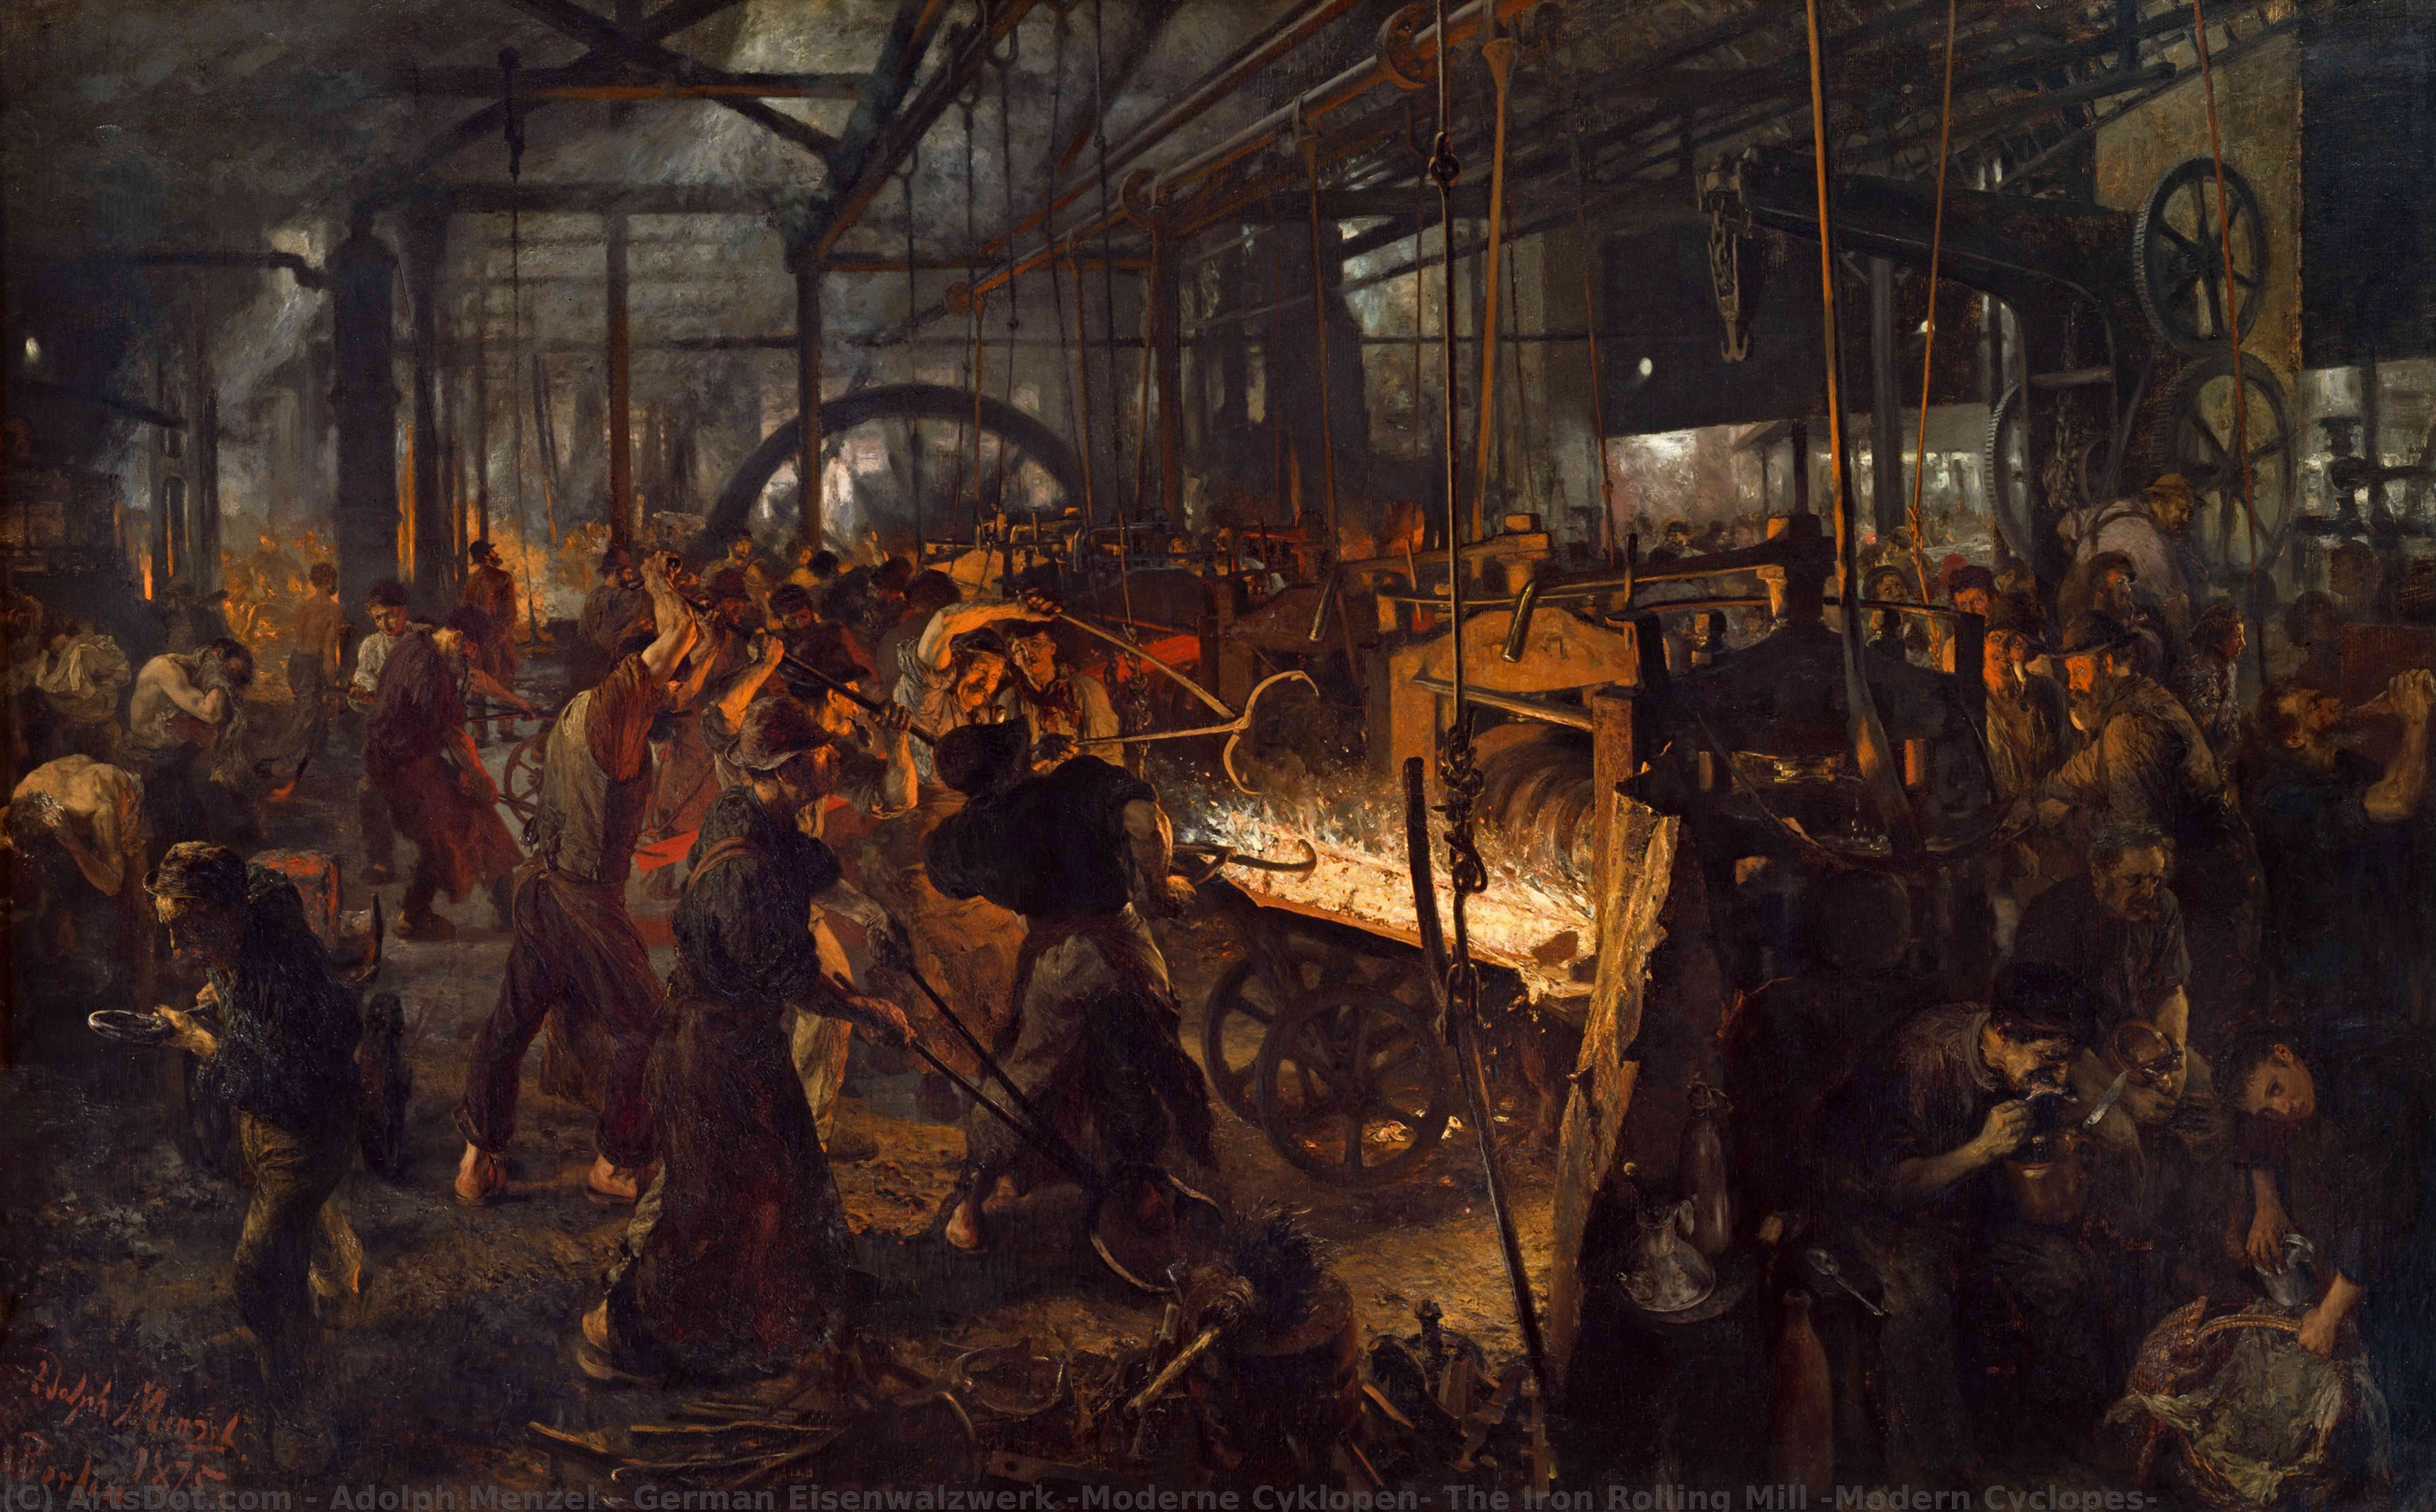 Order Art Reproduction : German Eisenwalzwerk (Moderne Cyklopen) The Iron Rolling Mill (Modern Cyclopes), 1875 by Adolph Menzel (1815-1905, Poland) | ArtsDot.com